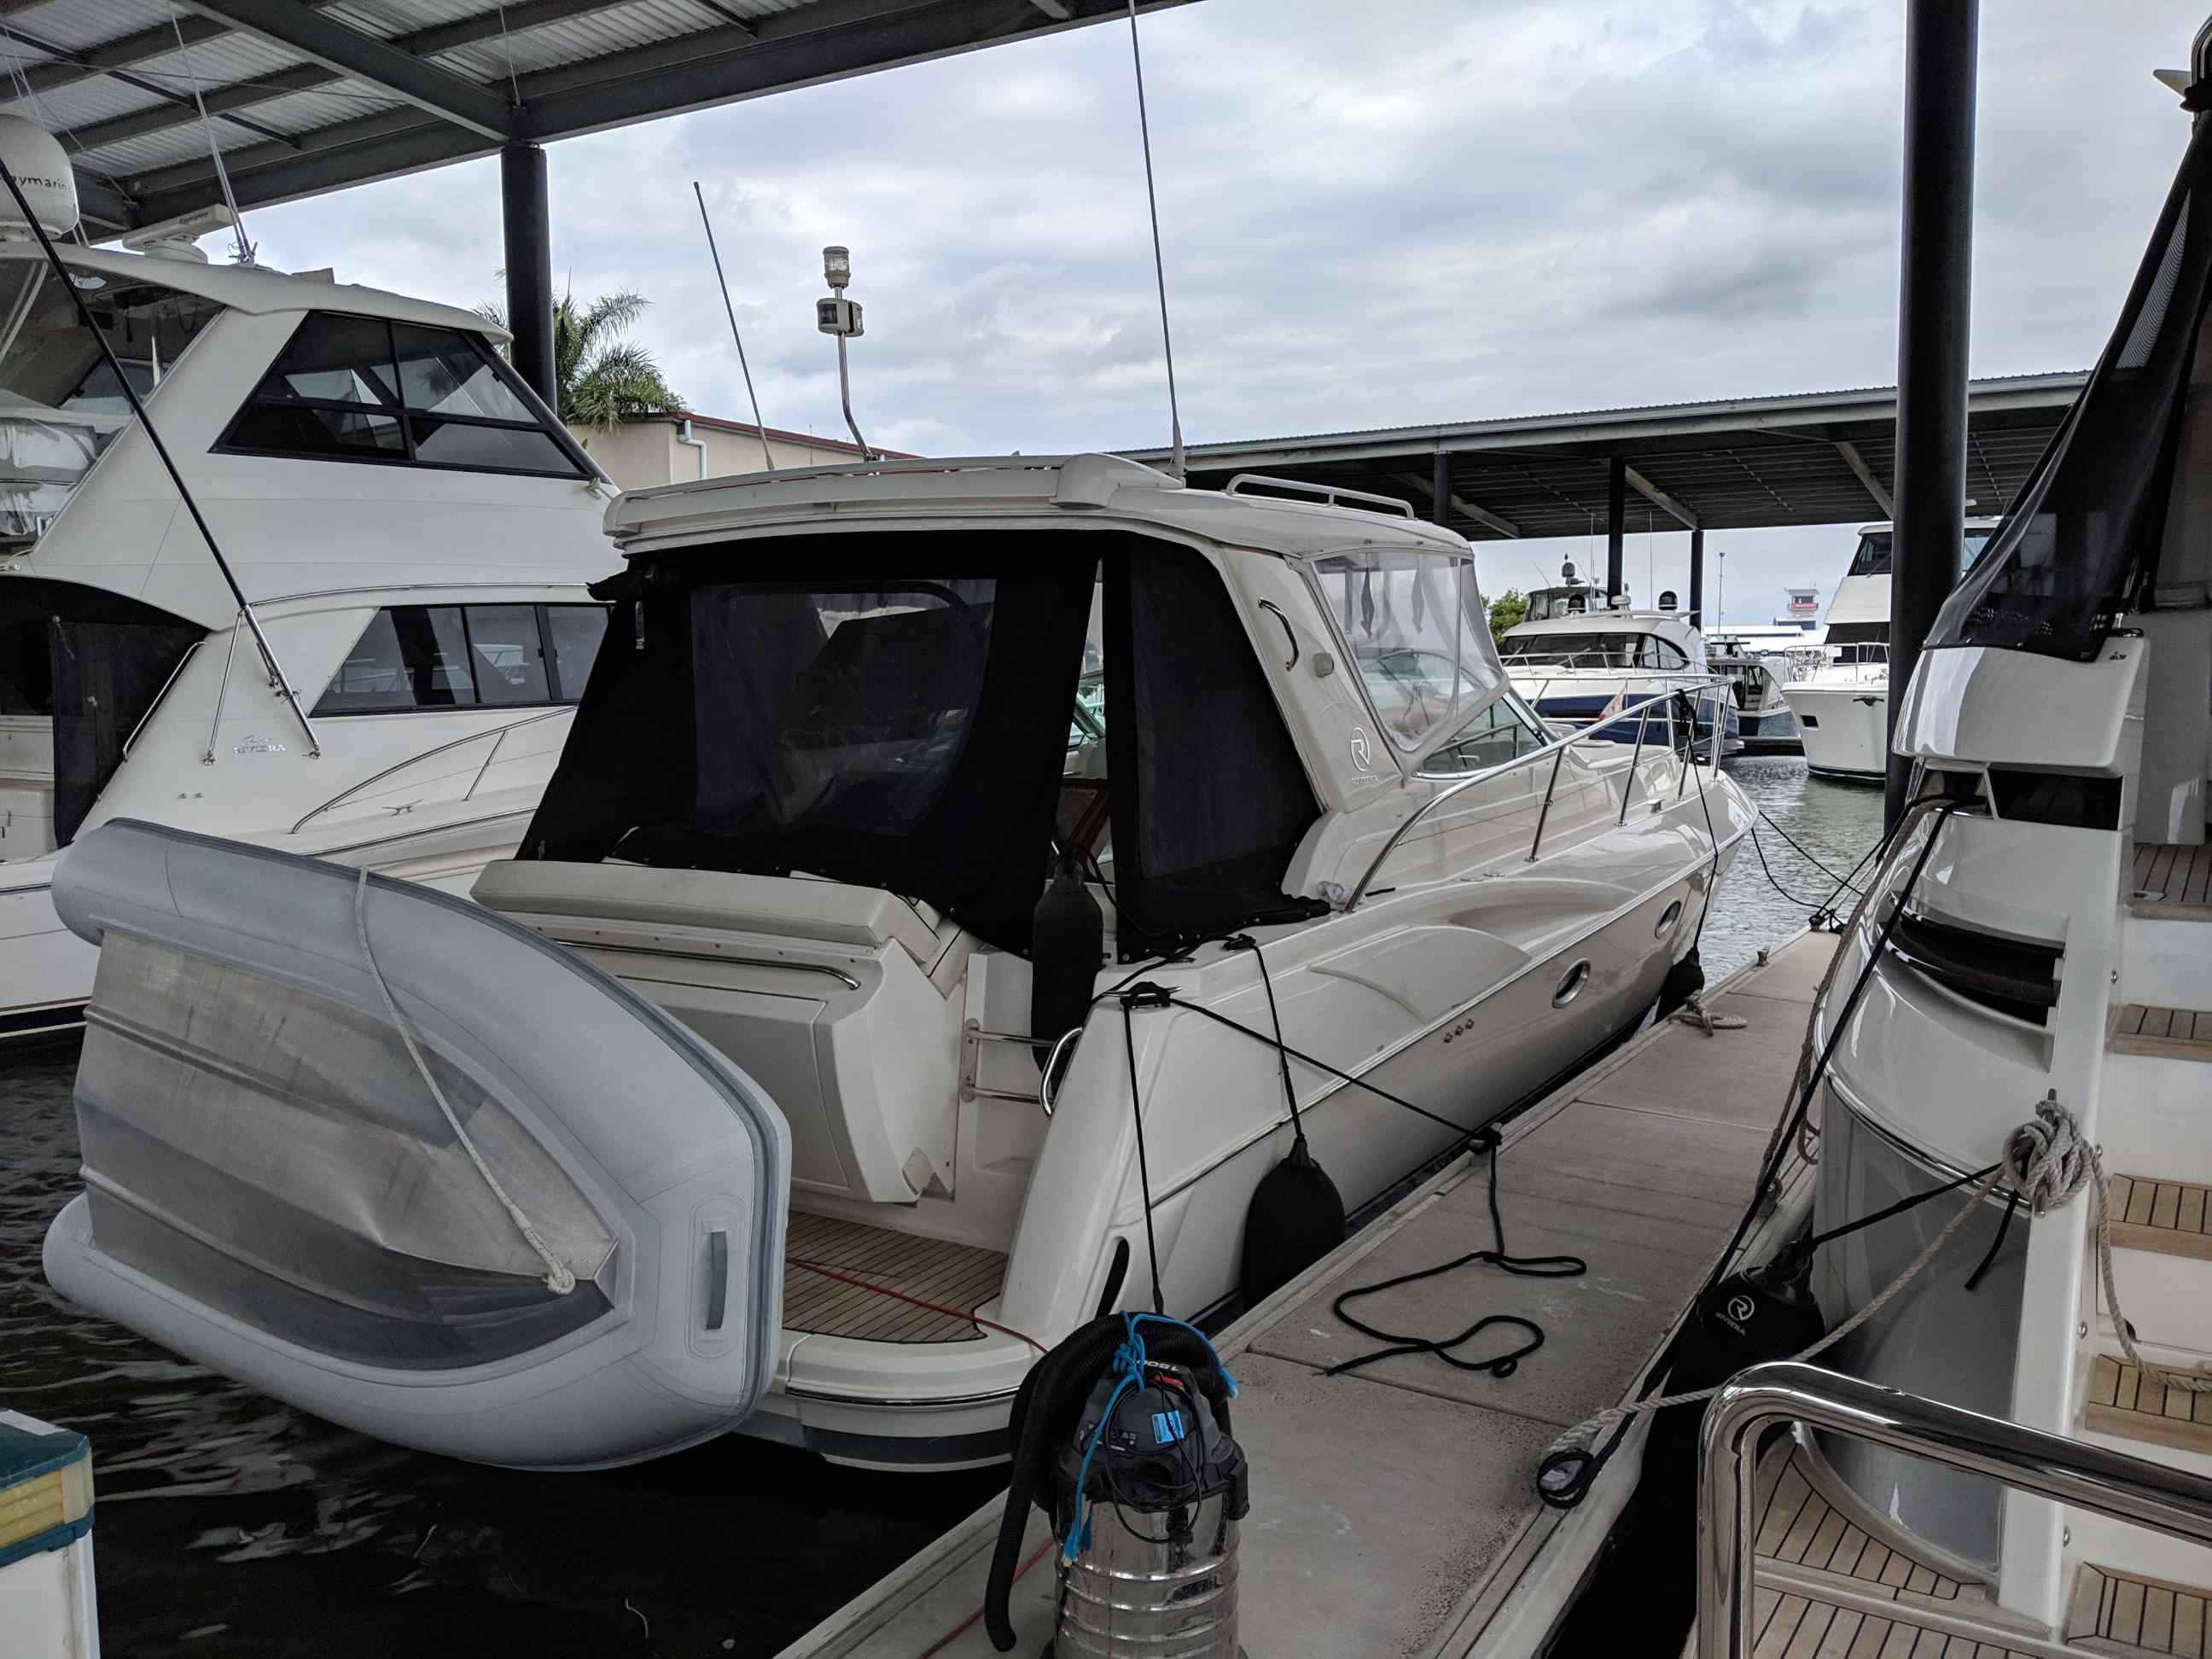 Boat clears, Boat Covers, Queensland Canvas and Marine custom made covers